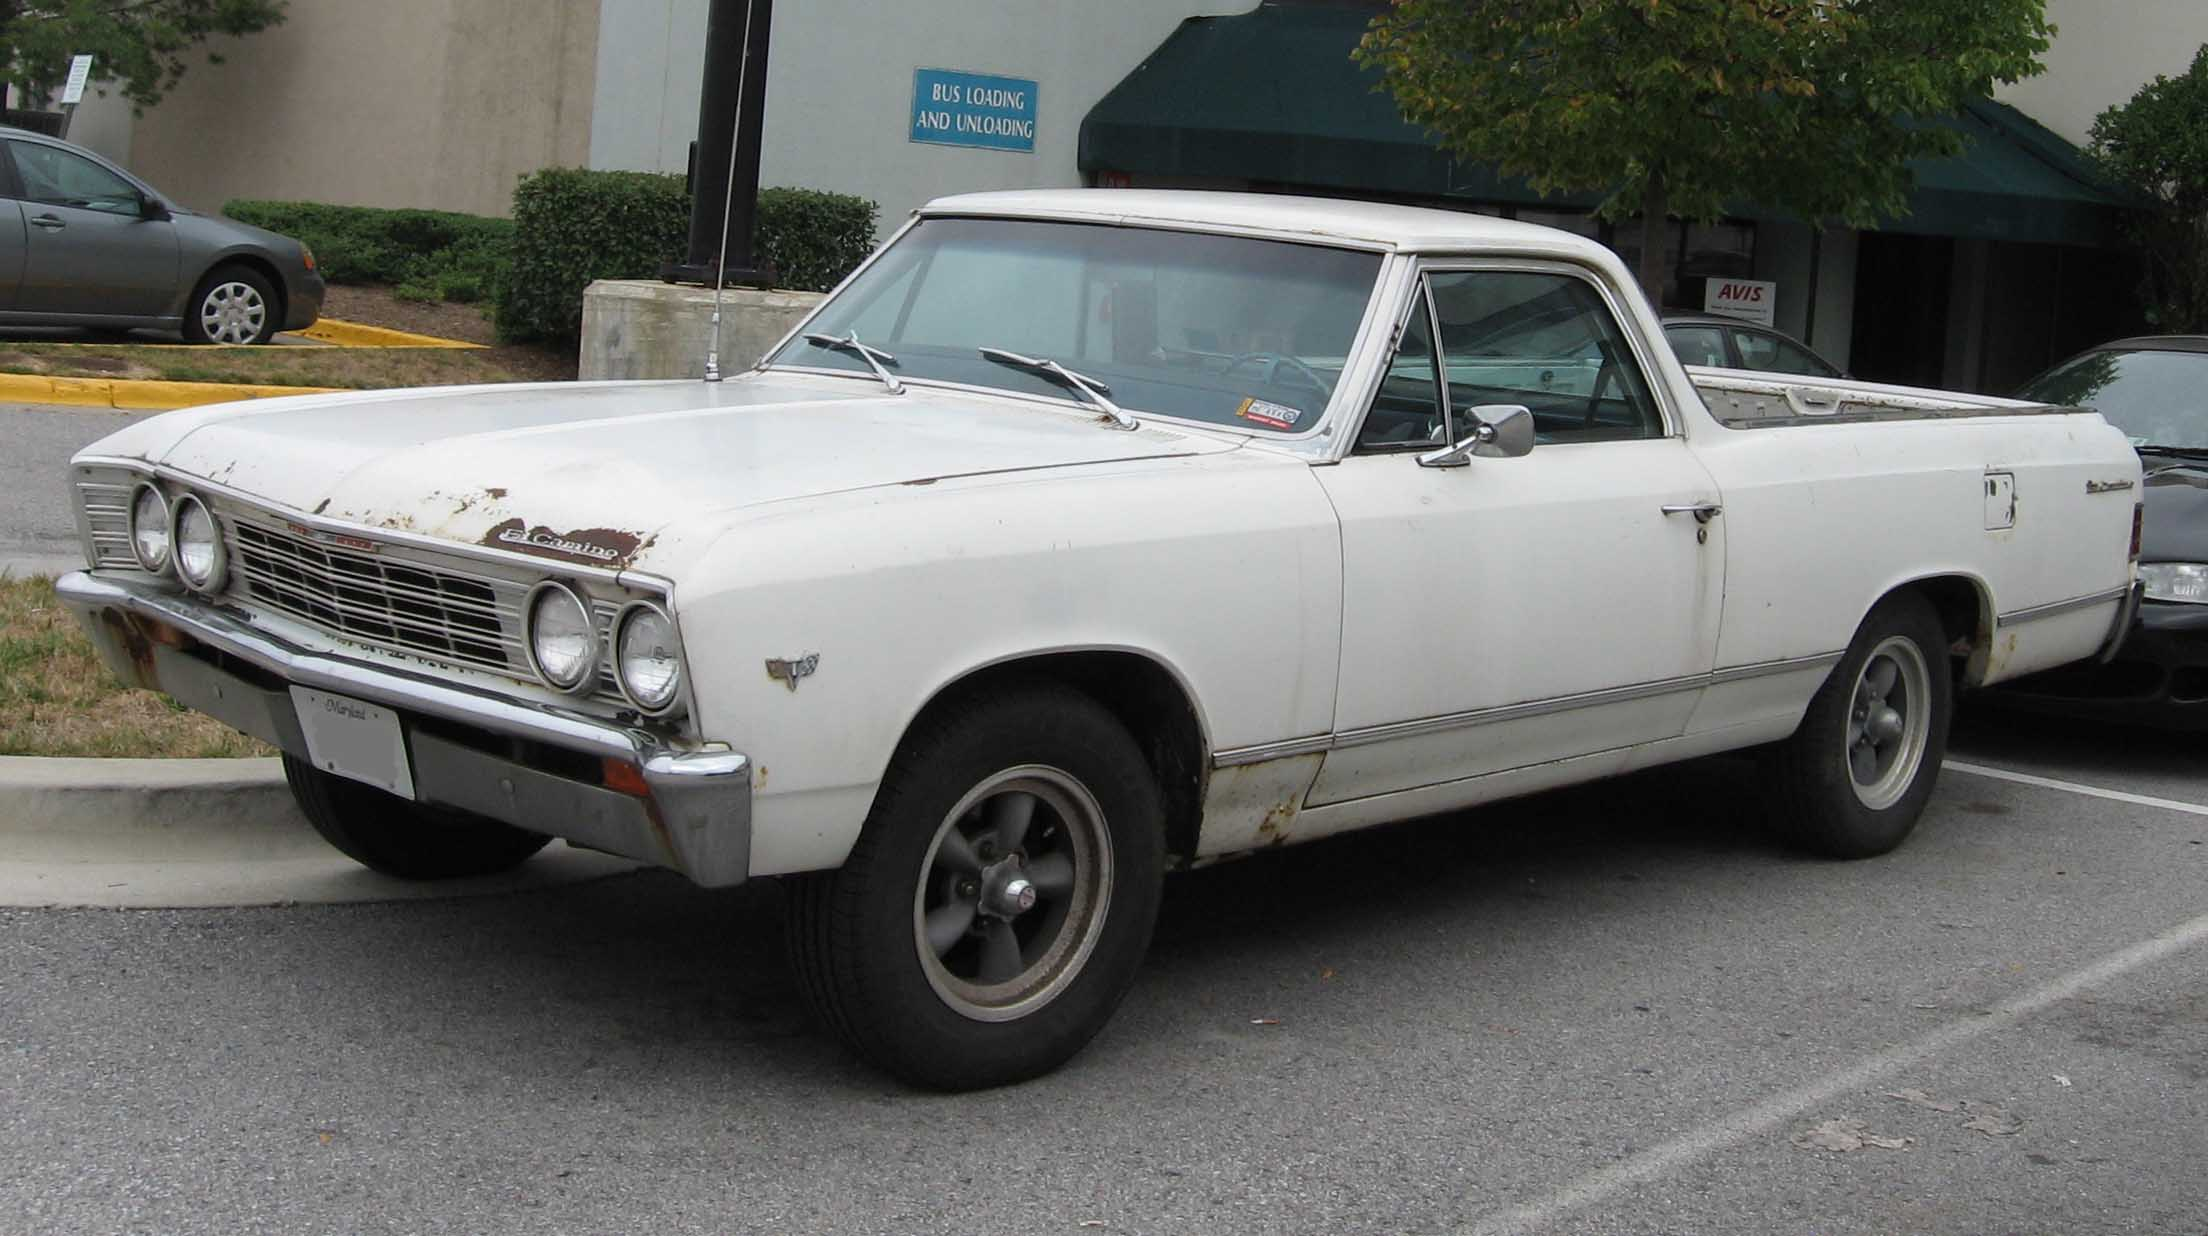 camino : Description 1967-Chevrolet-El-Camino.jpg